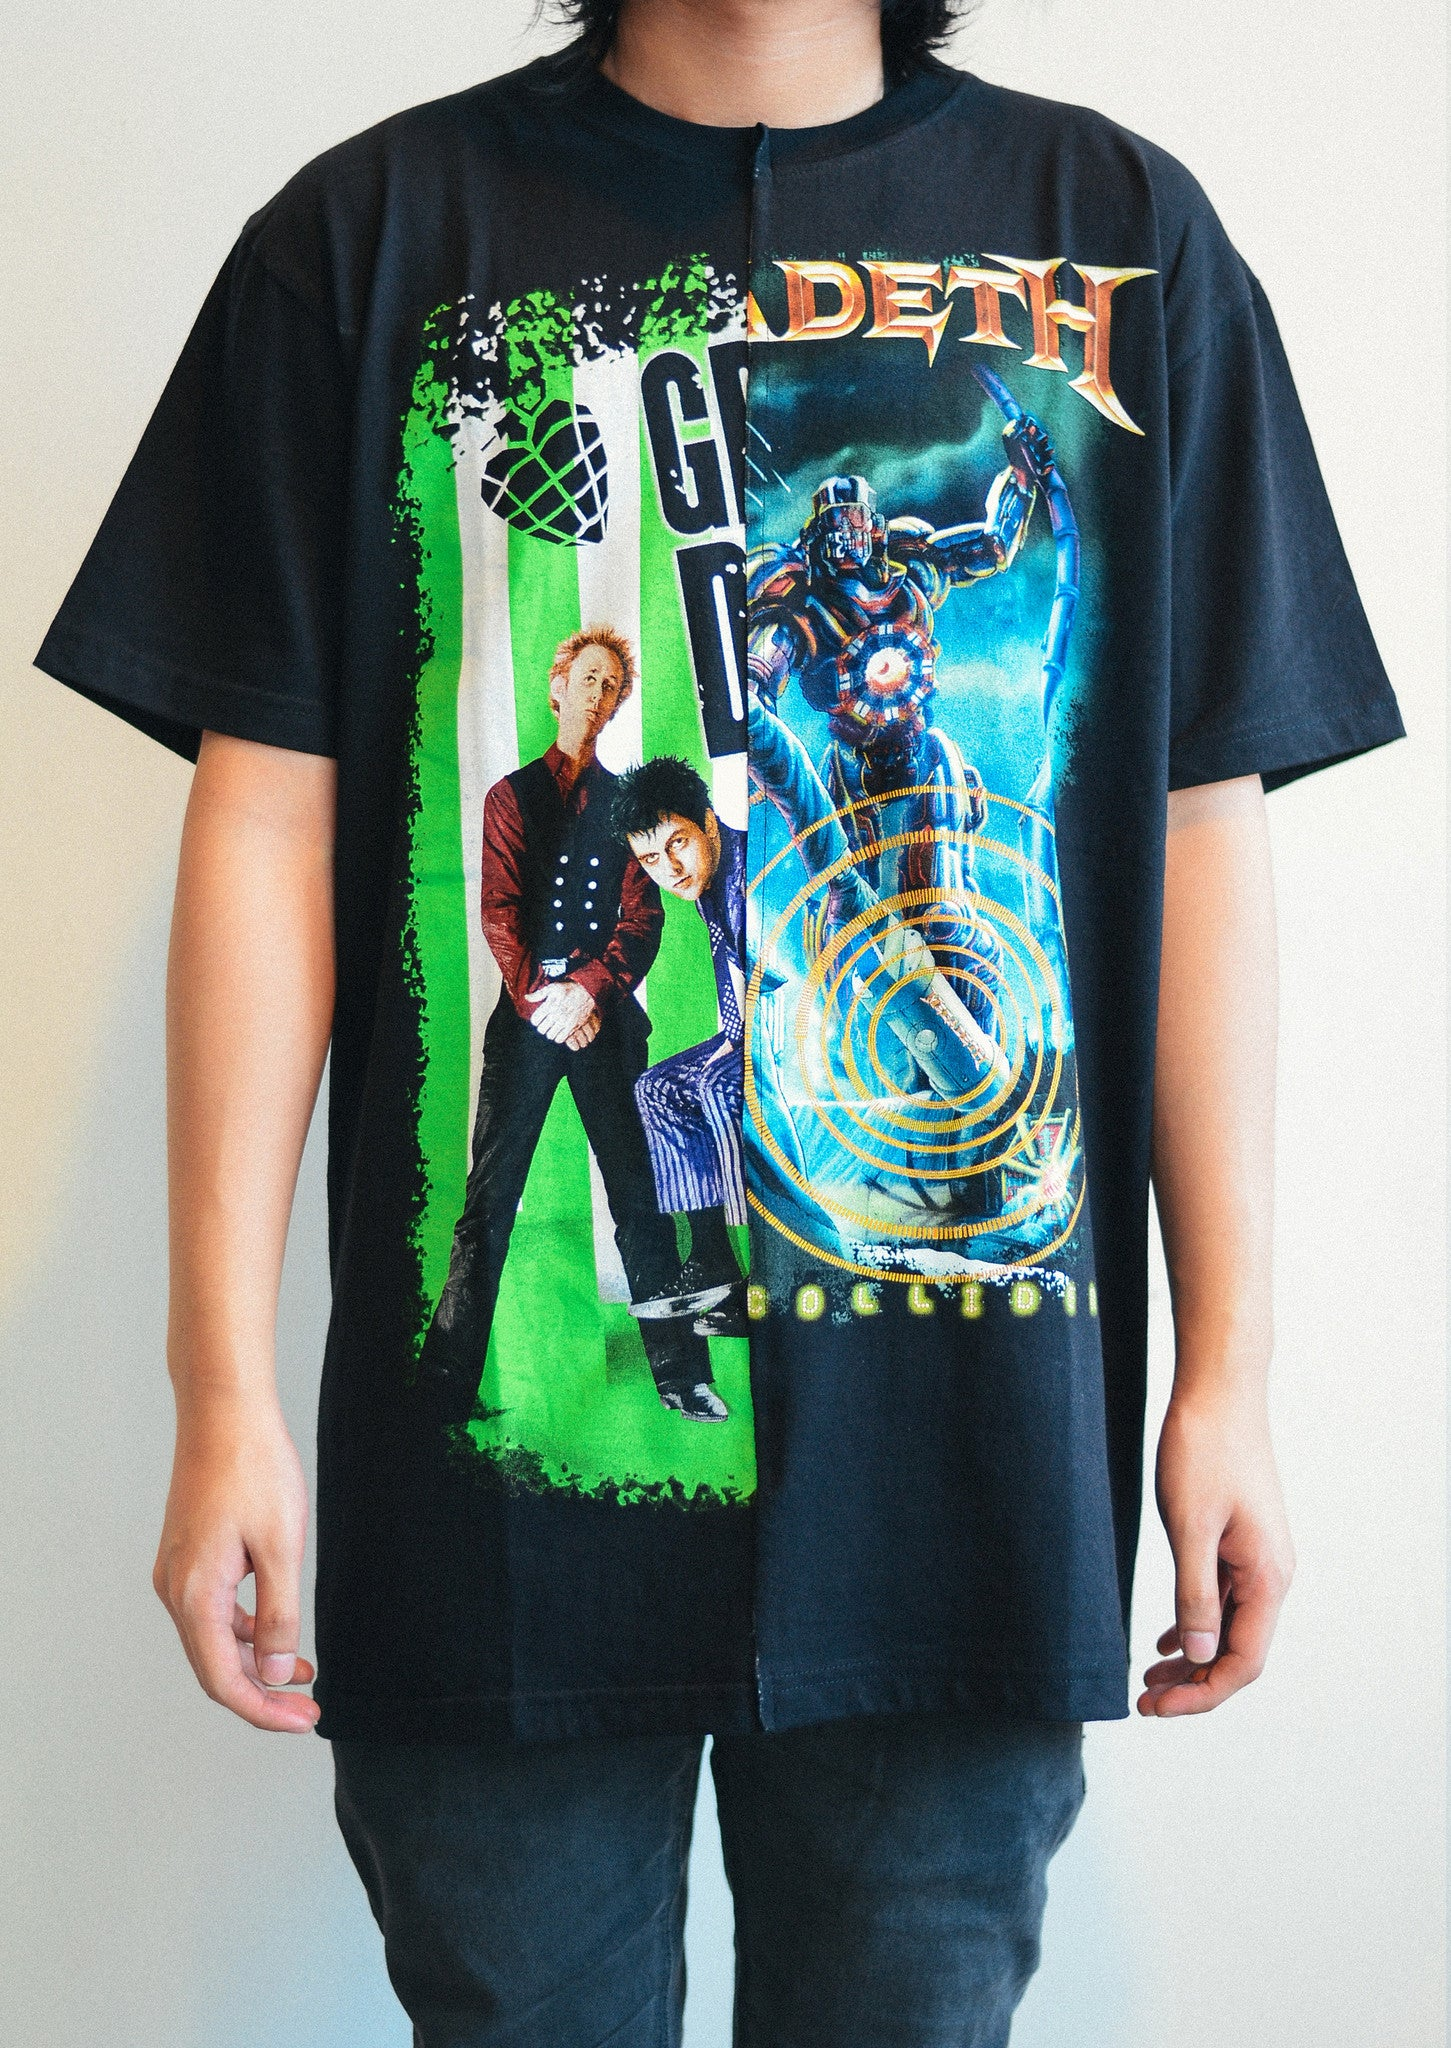 Rock Band Tee (Green Day / Megadeth)